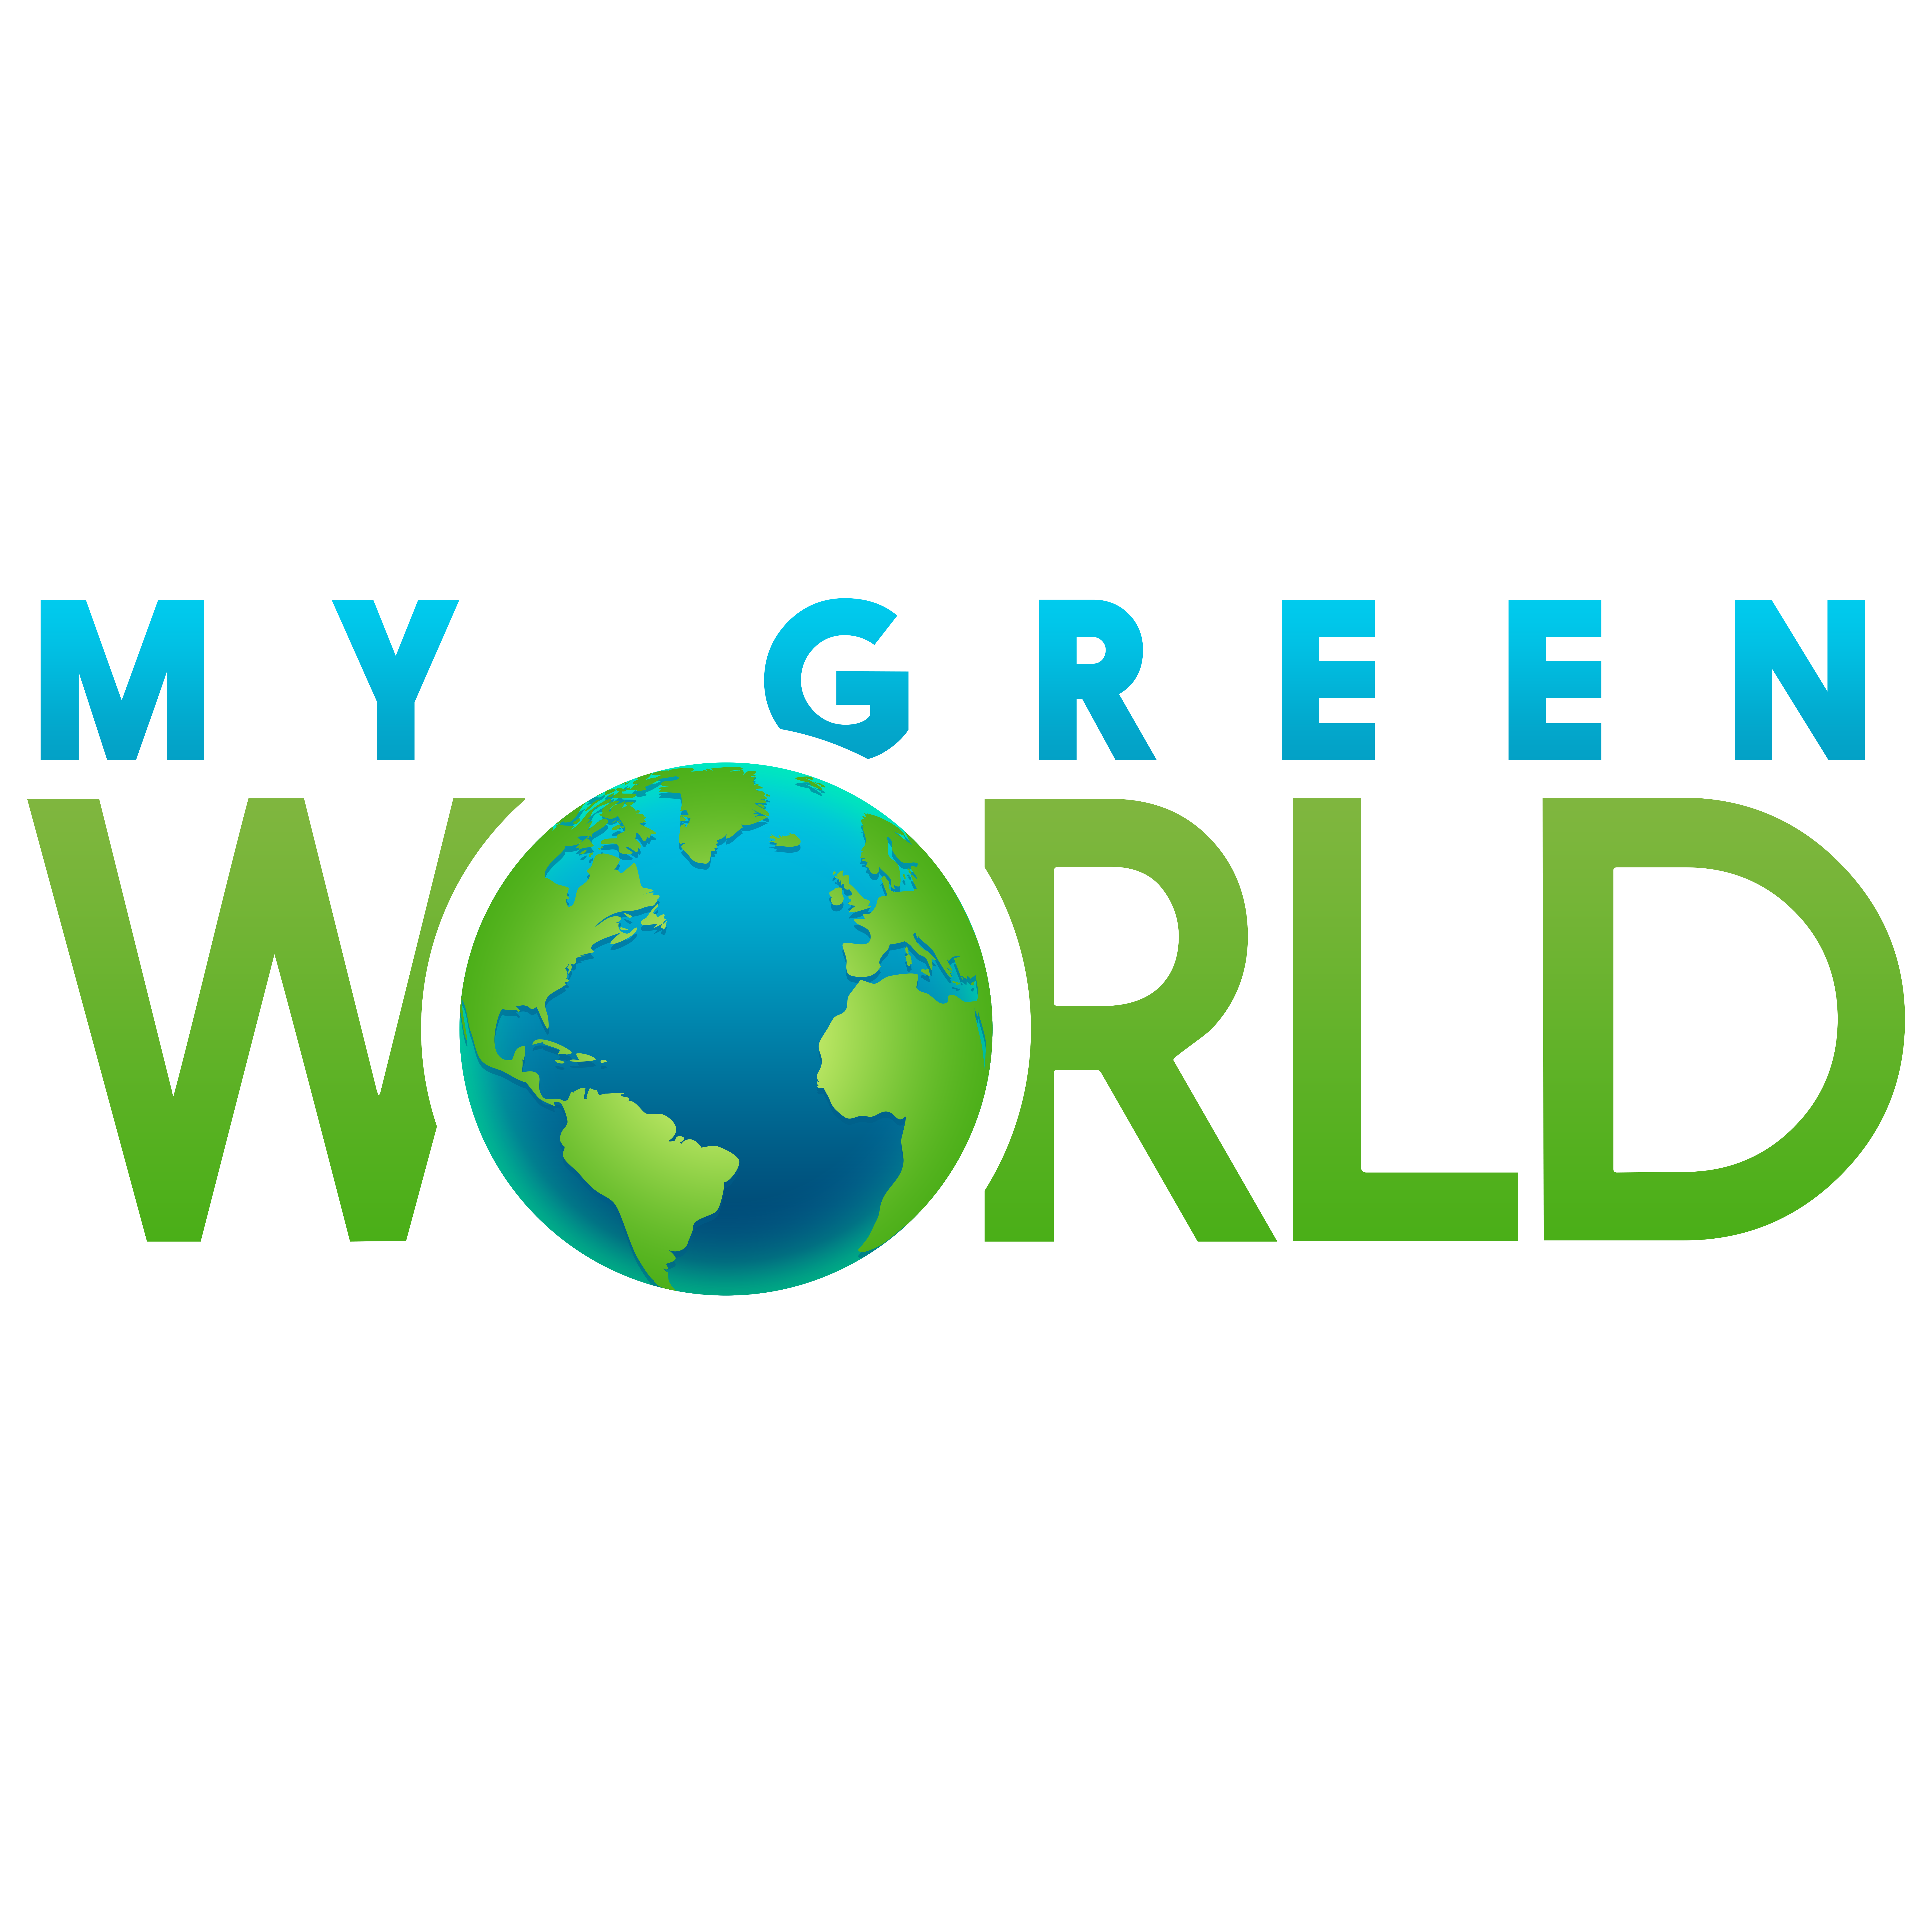 My Green World Kids Survey for Ages 8-18